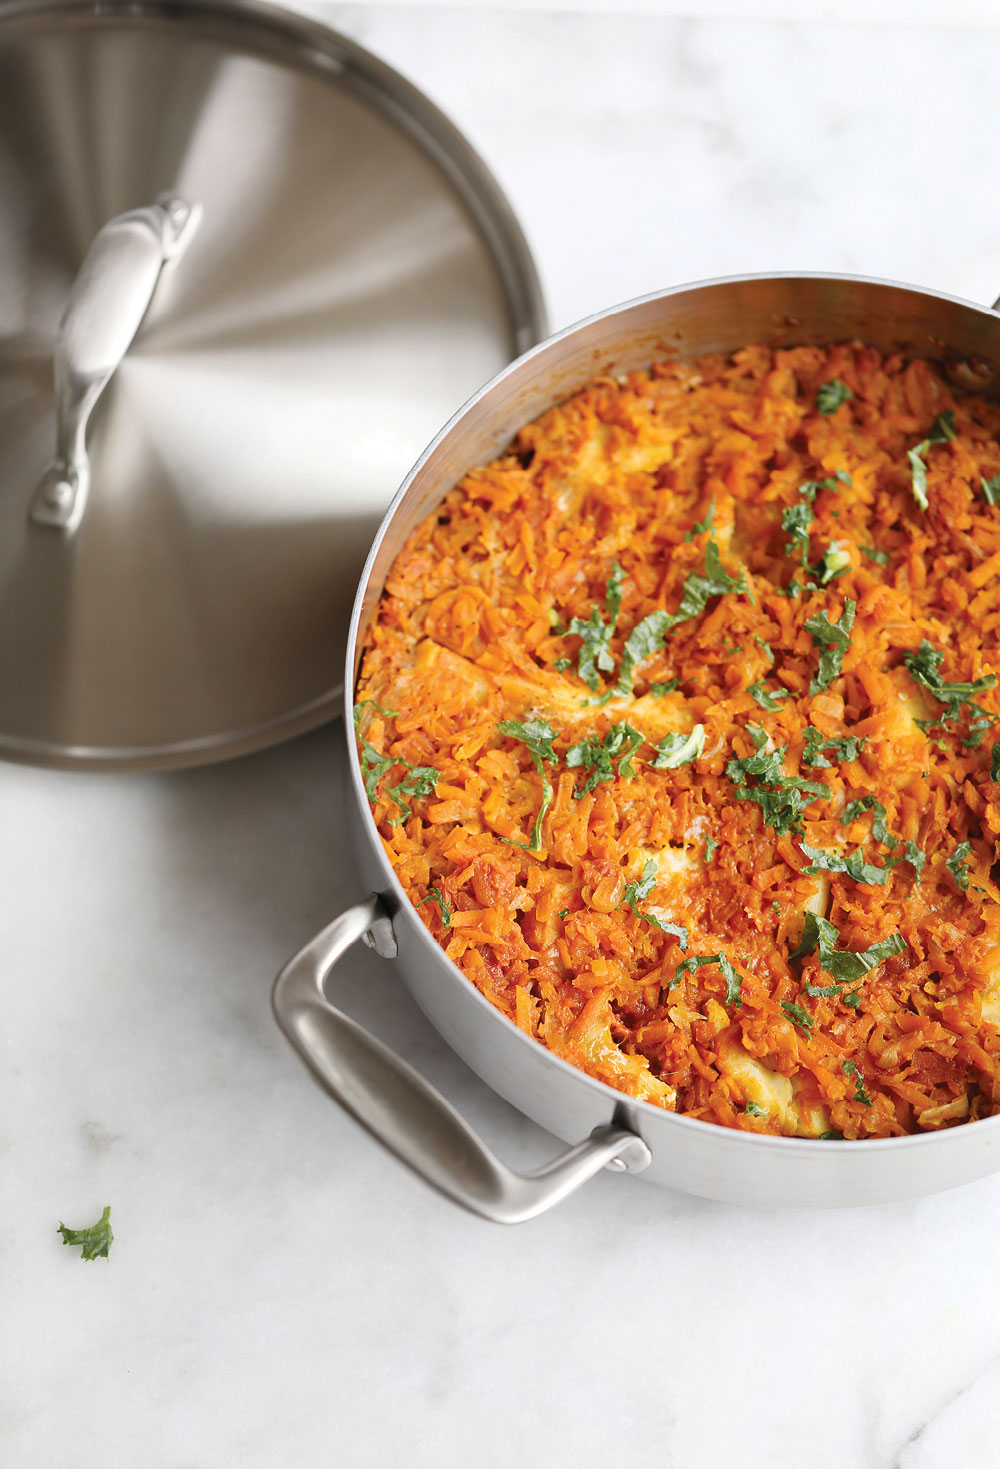 Shredded-Carrot-Fish-Casserole-5